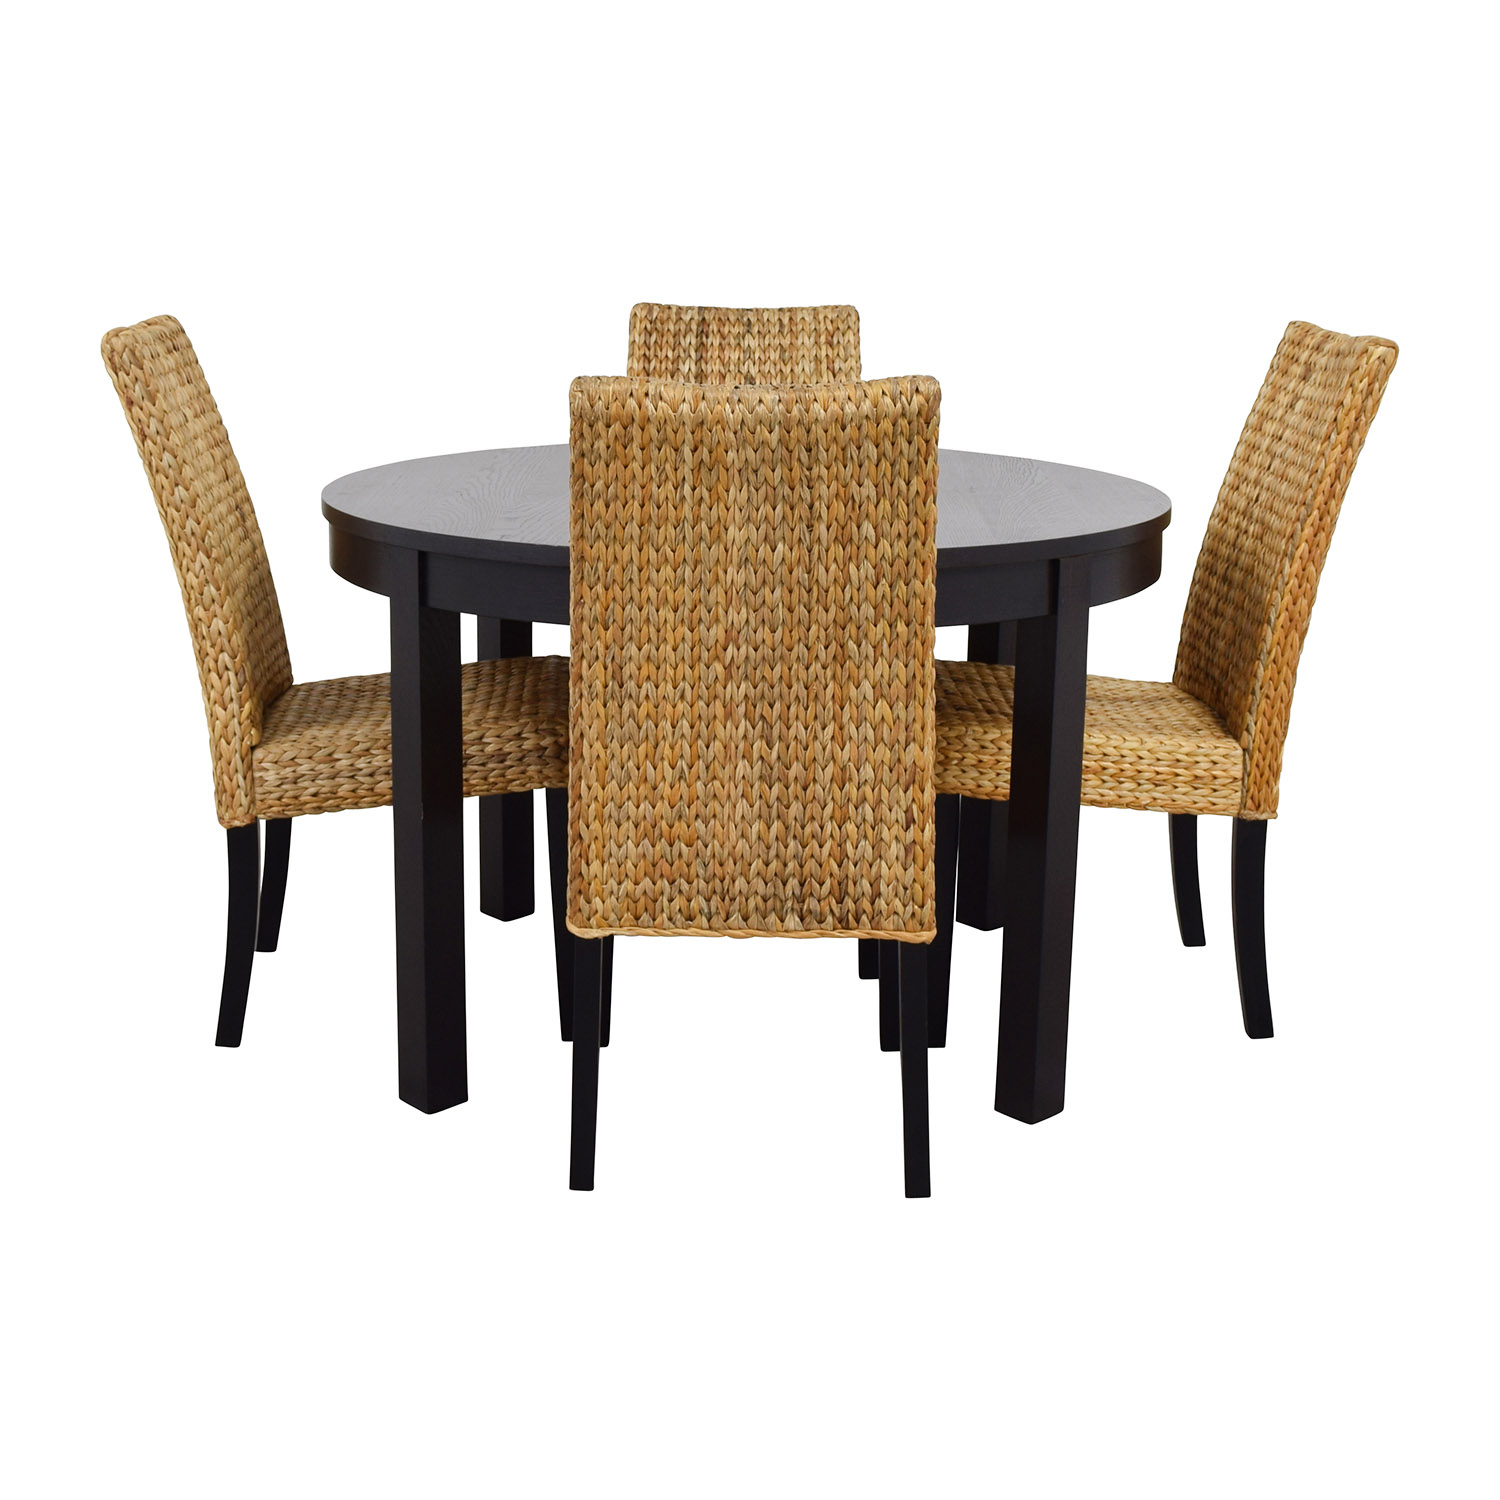 buy Round Black Dining Table Set with Four Chairs Macy's & IKEA